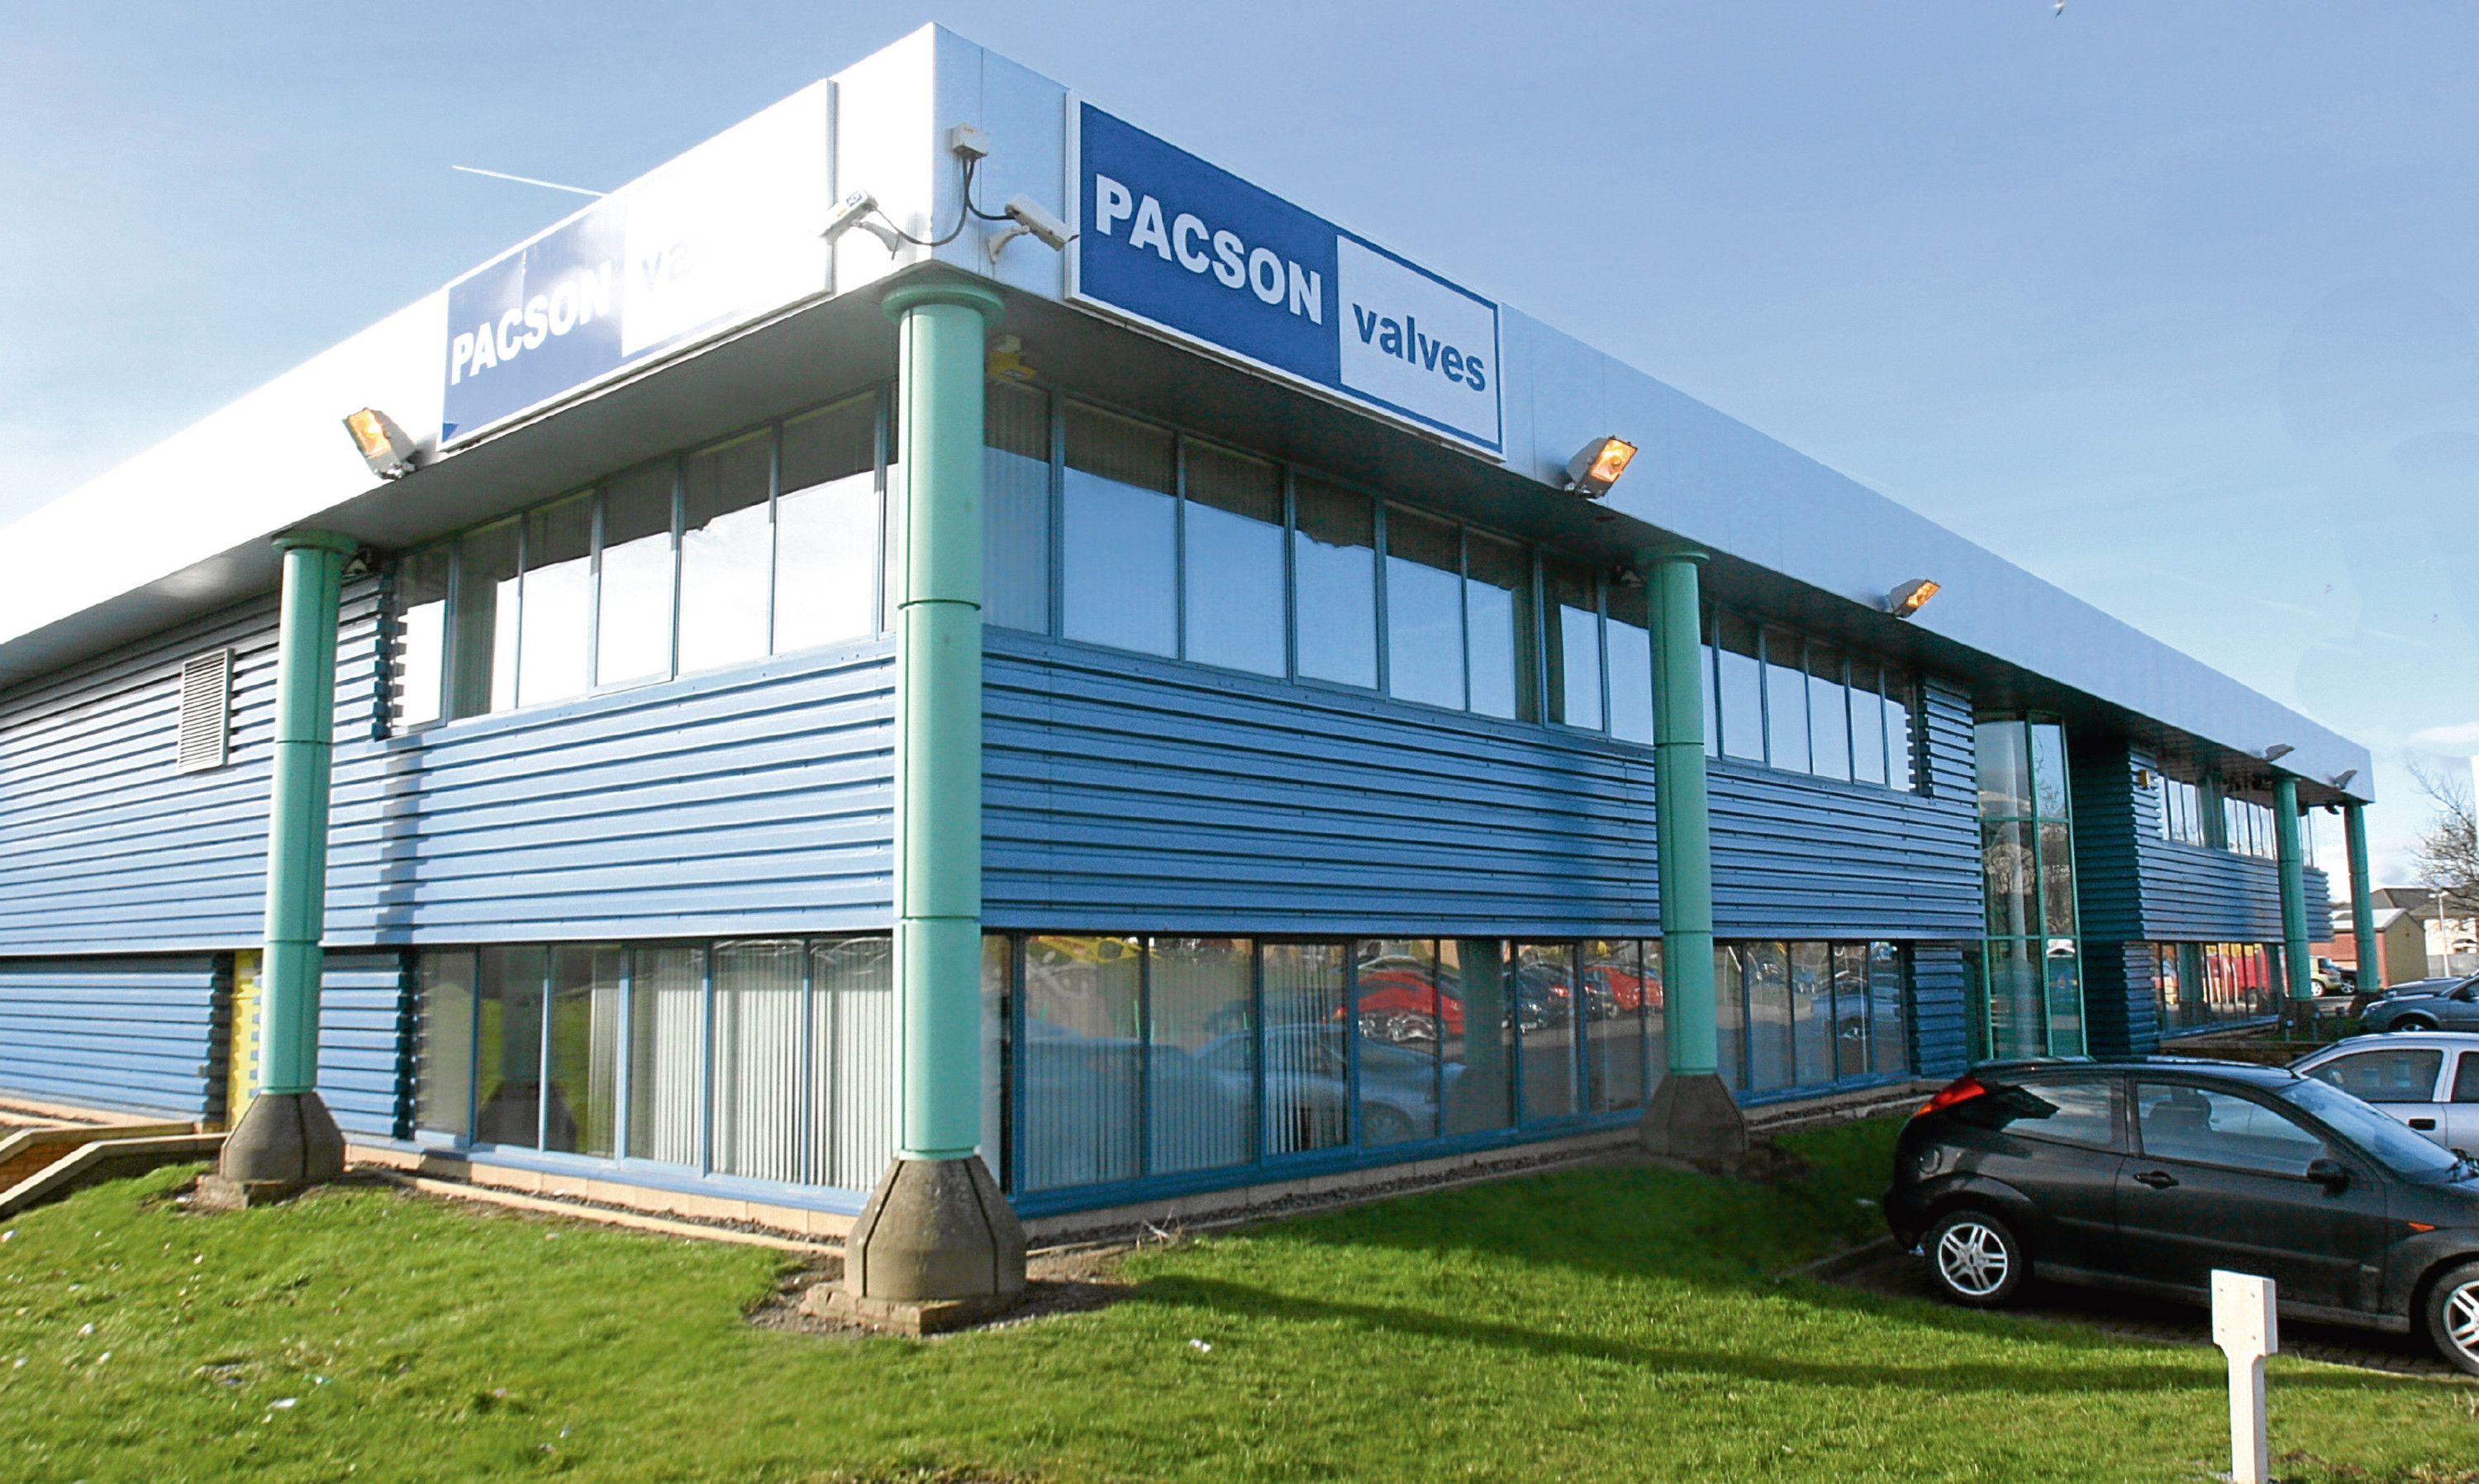 Pacson's premises at Claverhouse Industrial Park, Dundee.